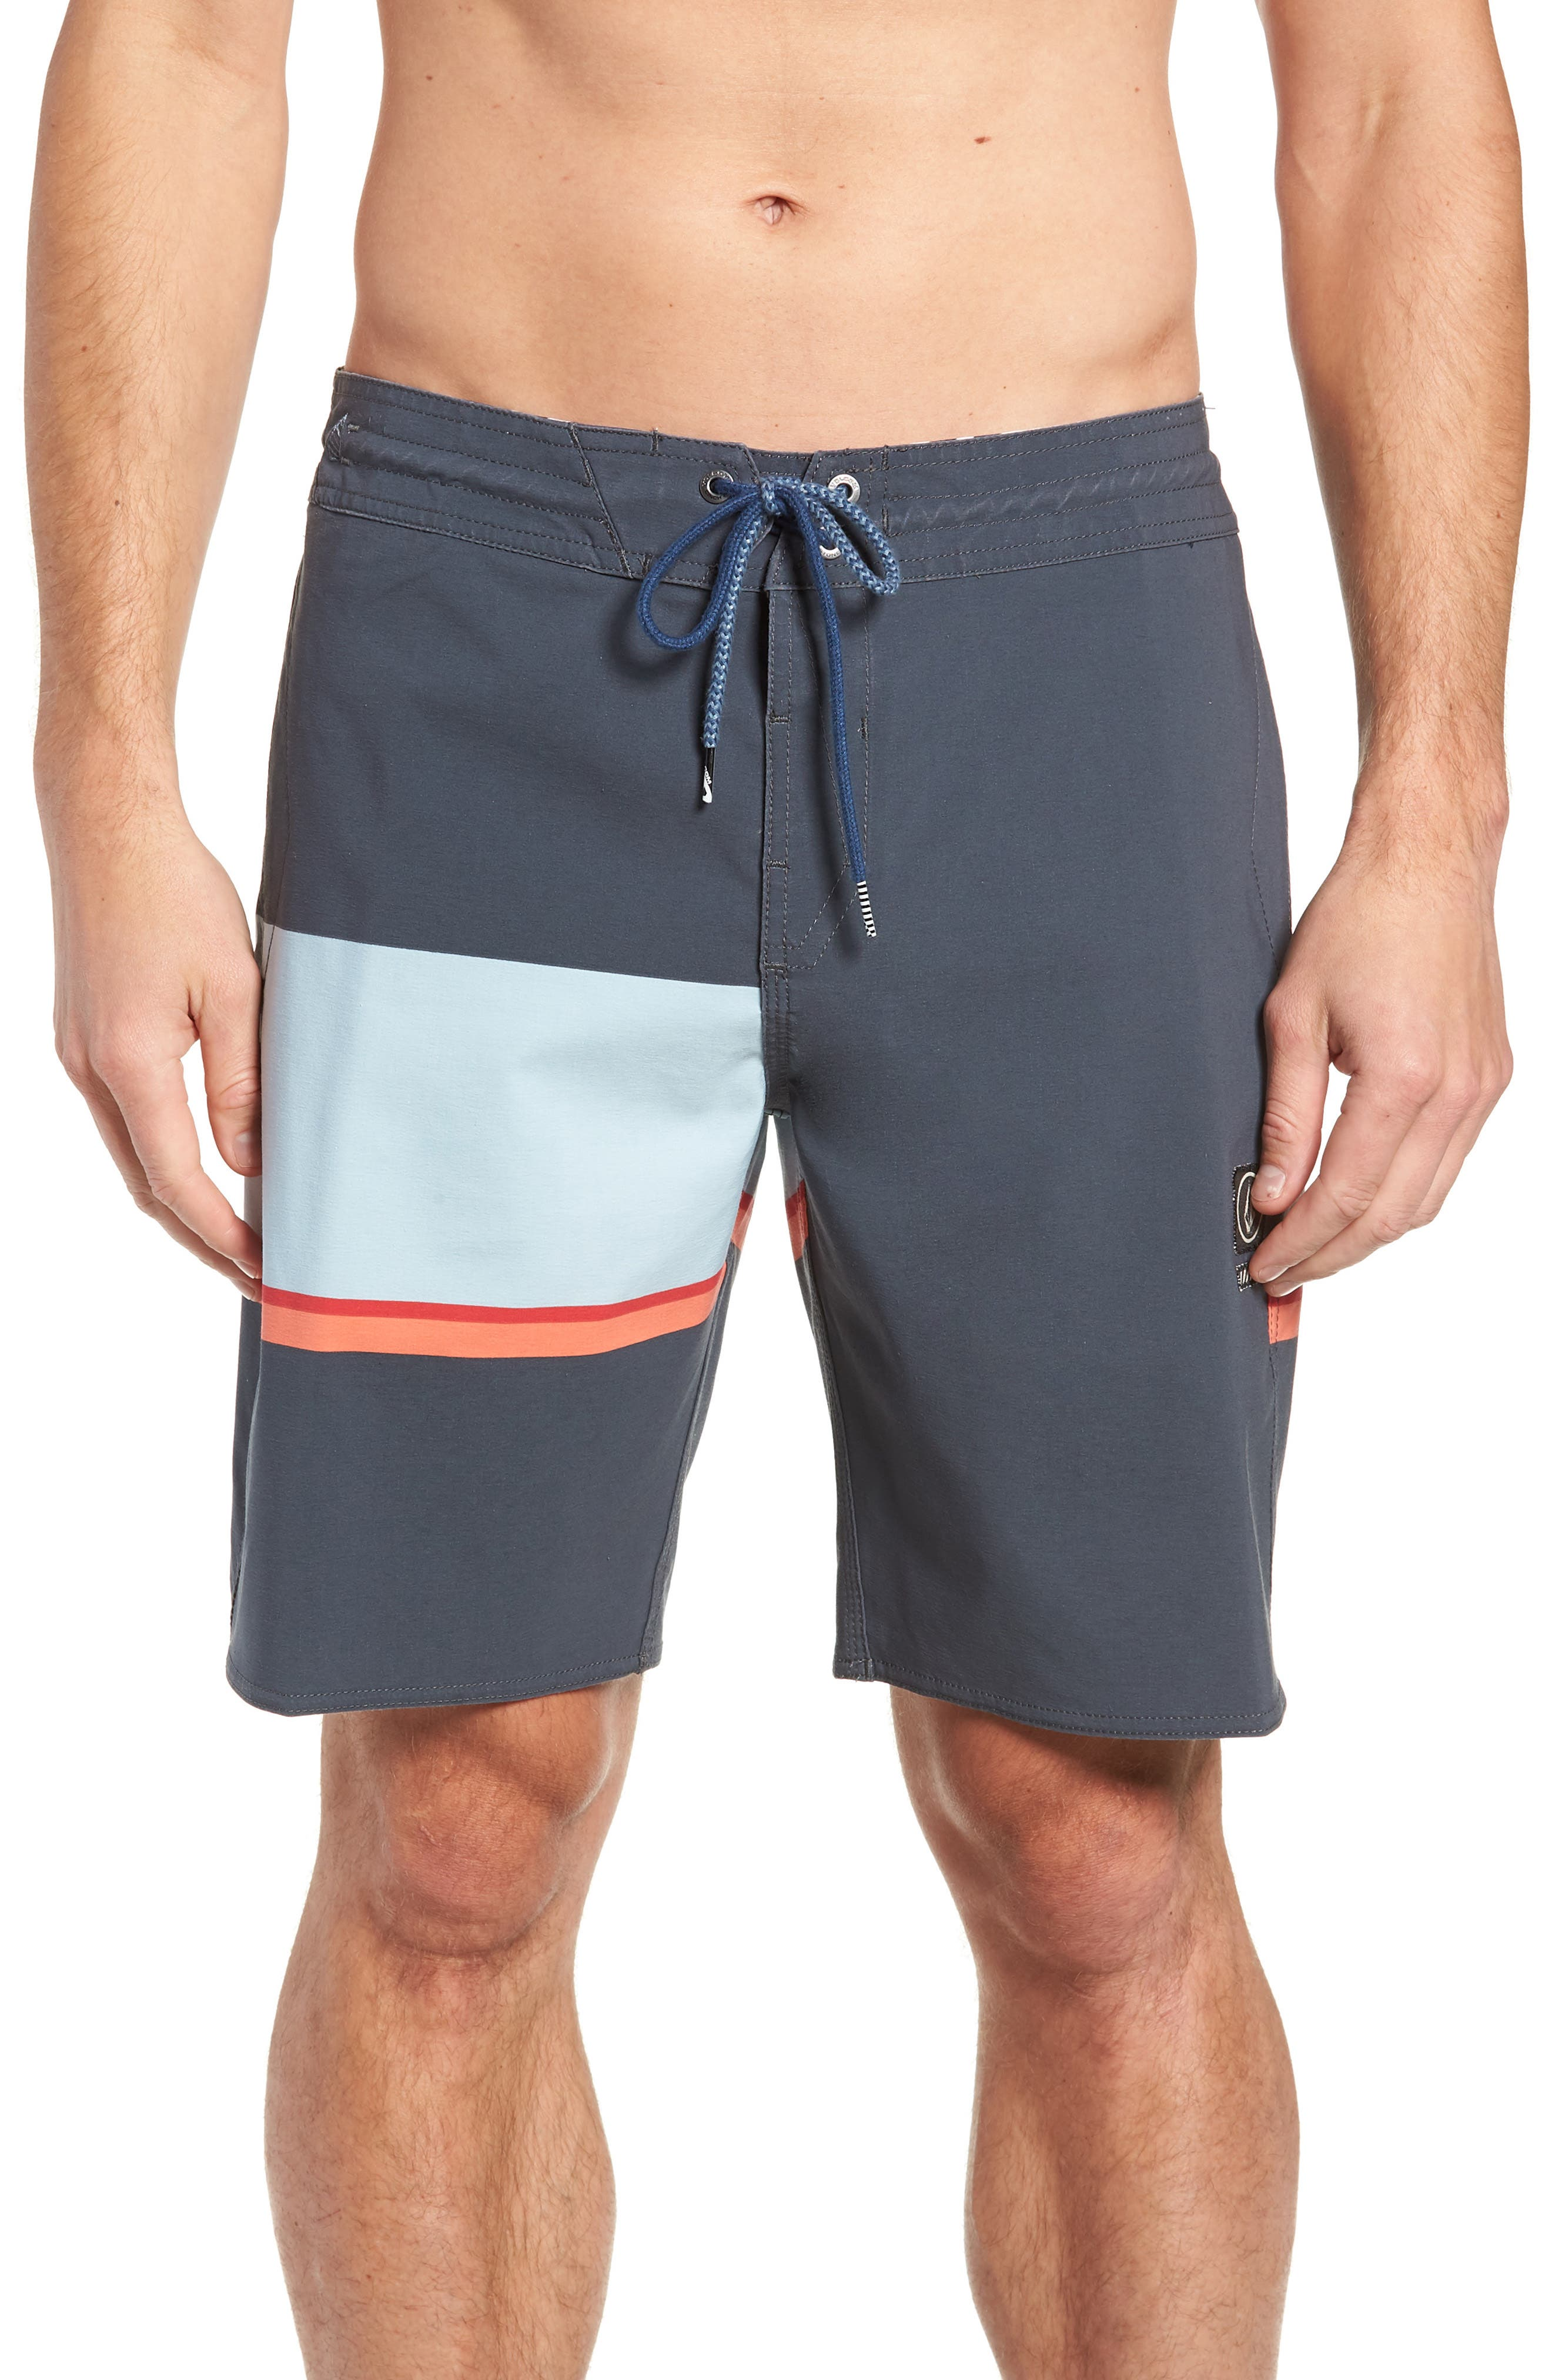 3 Quarta Stoney Board Shorts,                             Main thumbnail 1, color,                             MEDIUM BLUE